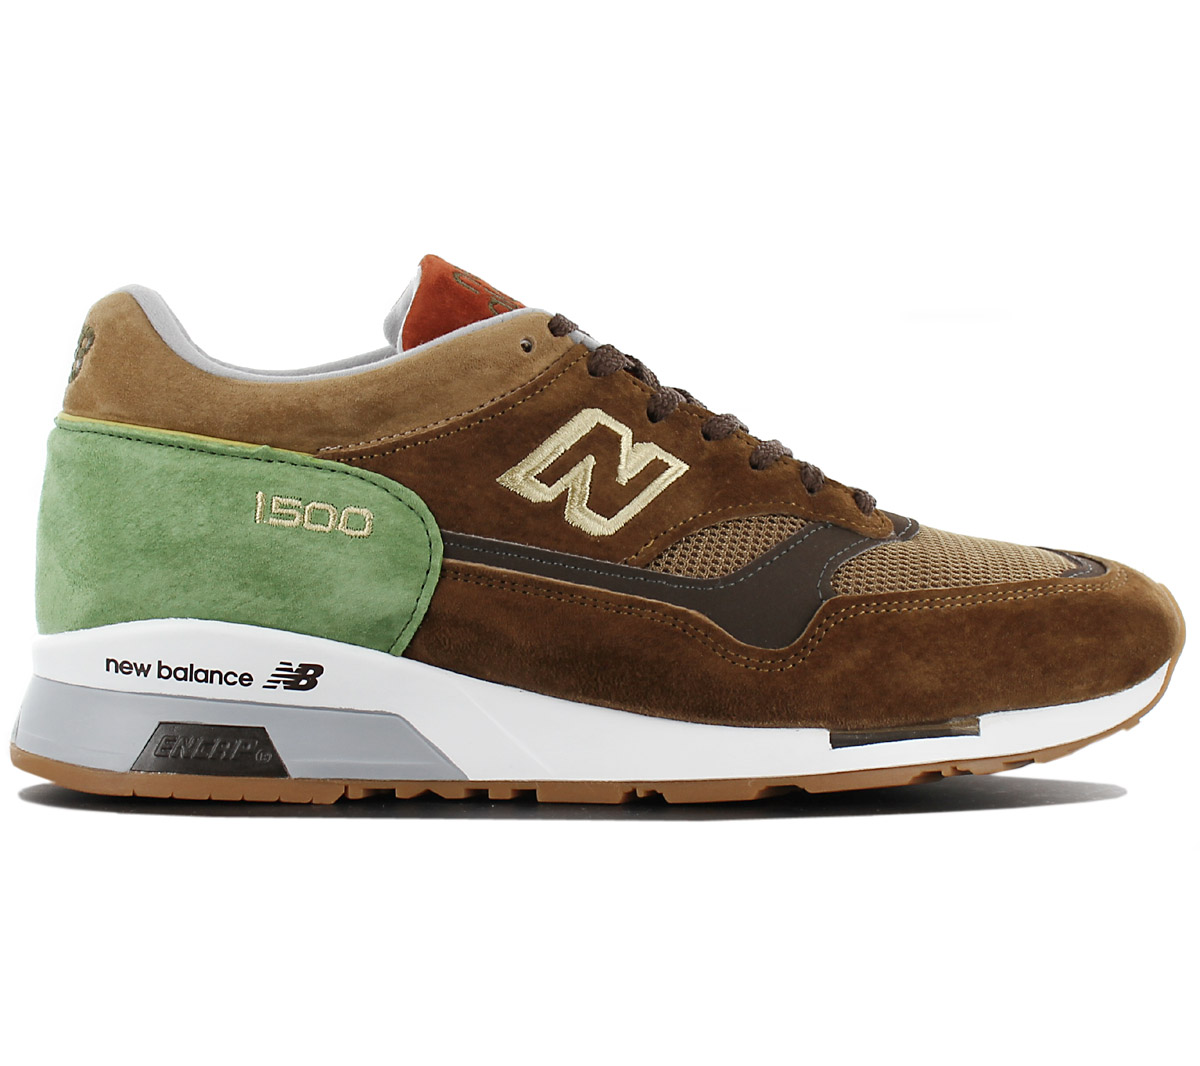 97979e58bedfa New Balance 4921 4/12ft1500ln Made in England Men's Sneakers Shoes ...